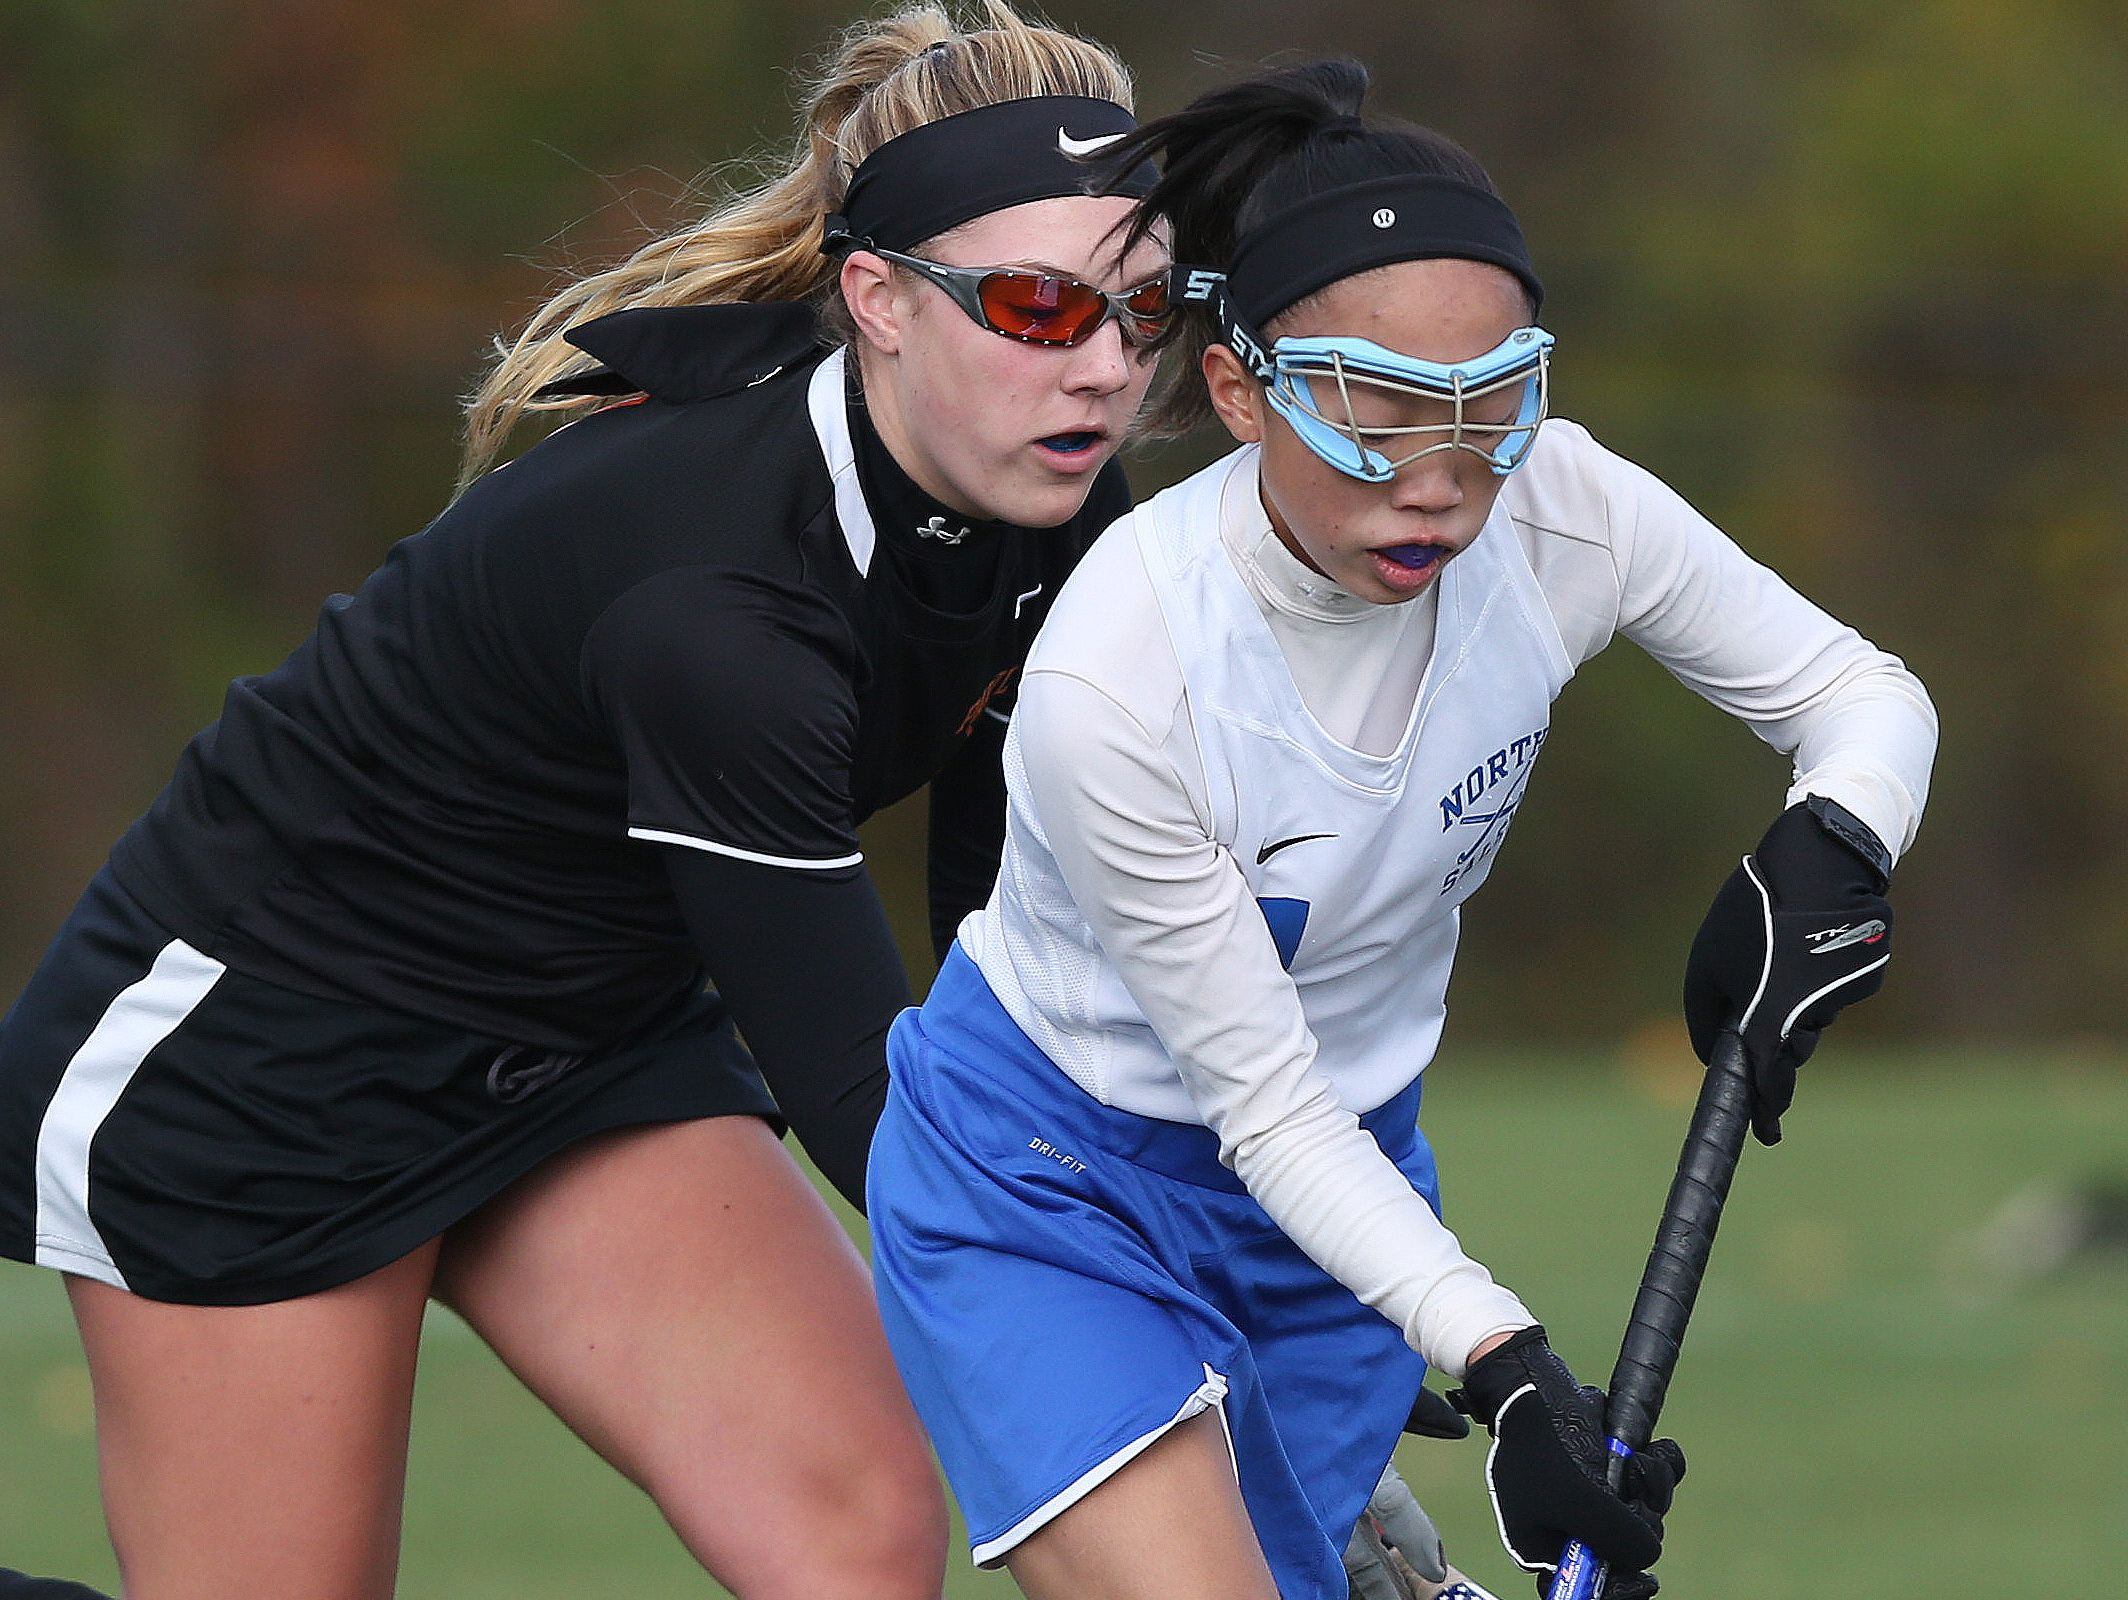 North Salem's Mariana Alpizar (11) moves the ball away from Pawling's Courtney Adams (1) during field hockey action at North Salem High School Oct. 25, 2016. North Salem won the game 1-0.